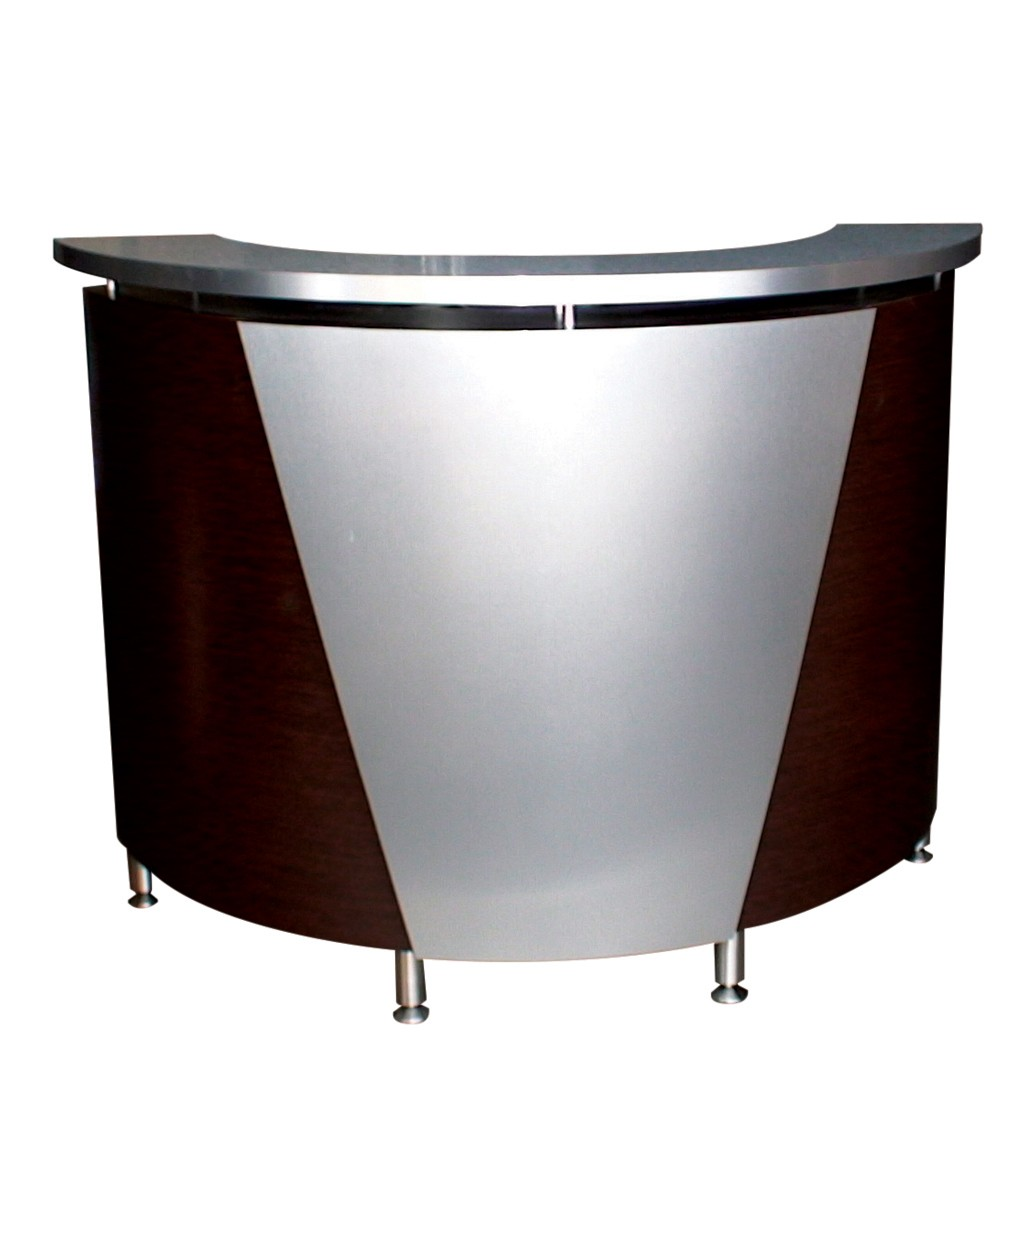 Pibbs 5031 Curved Salon Spa Reception Desk In 20 Colors Free